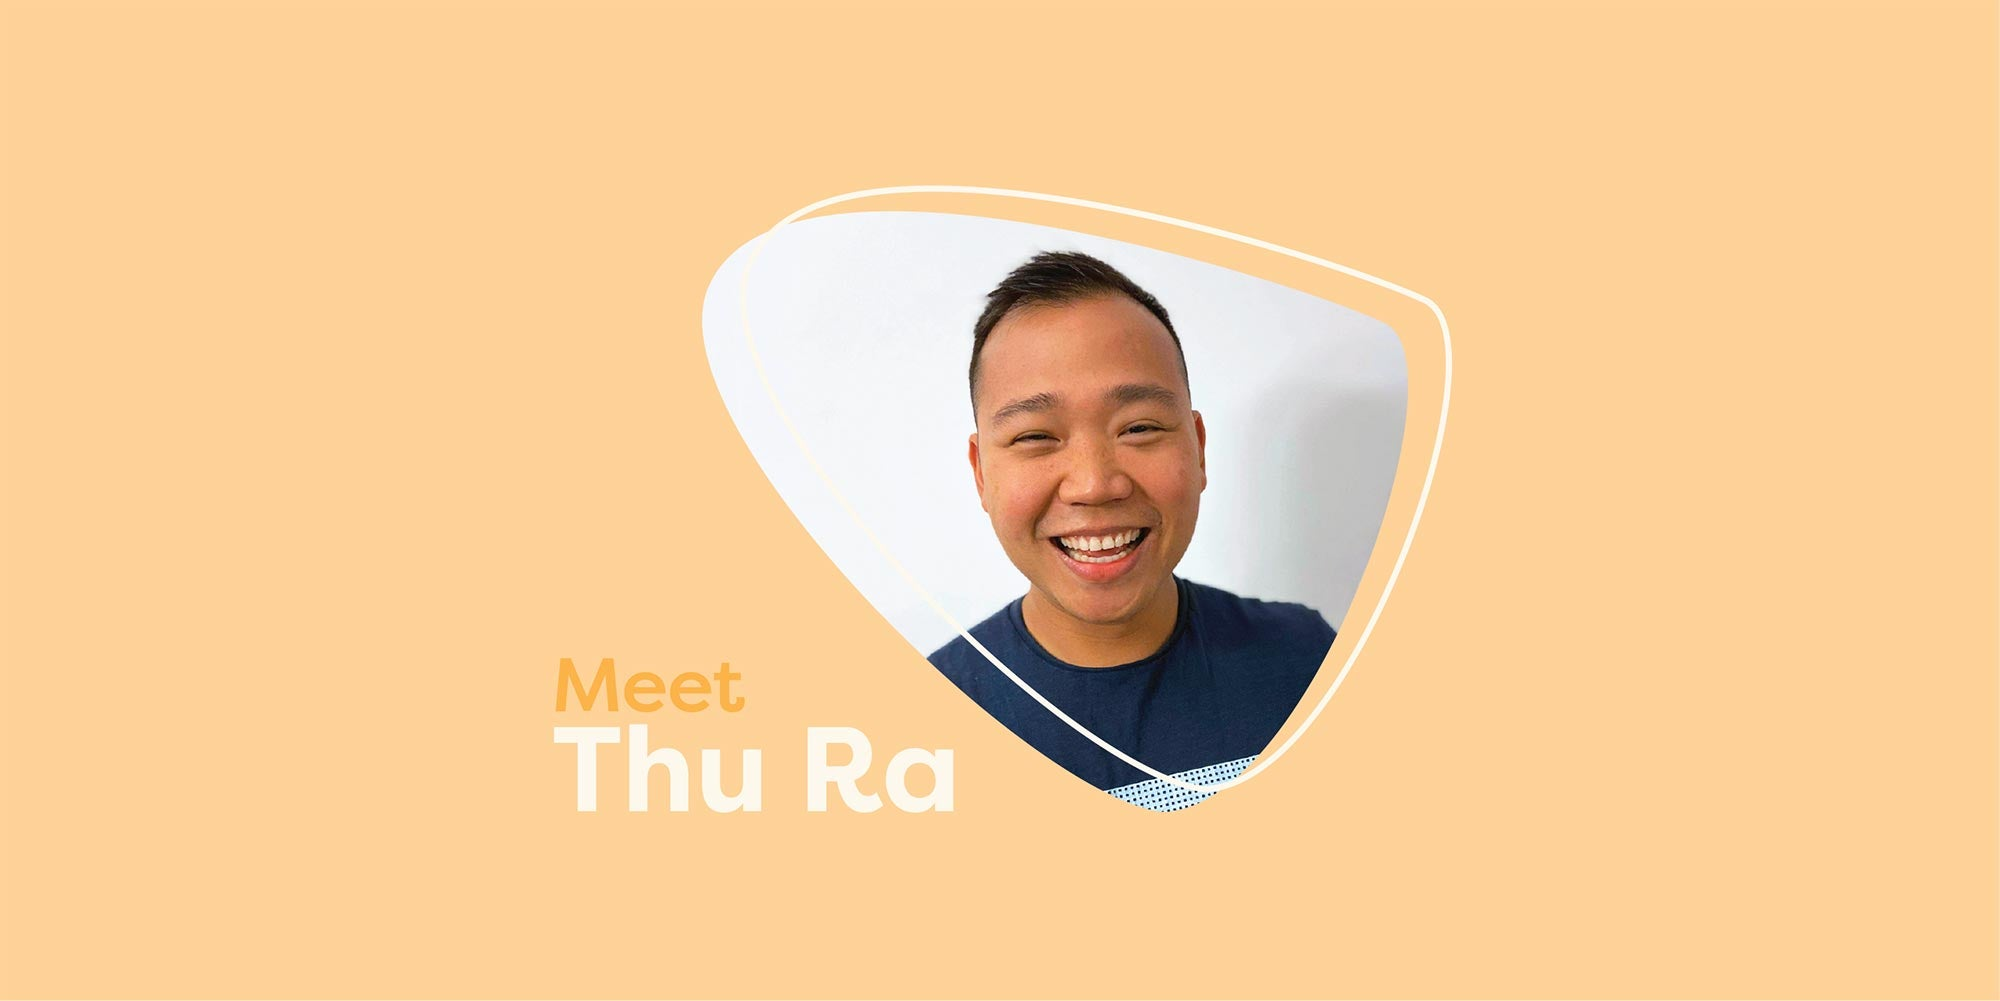 Thu Ra, co-founder and advisor at Upright